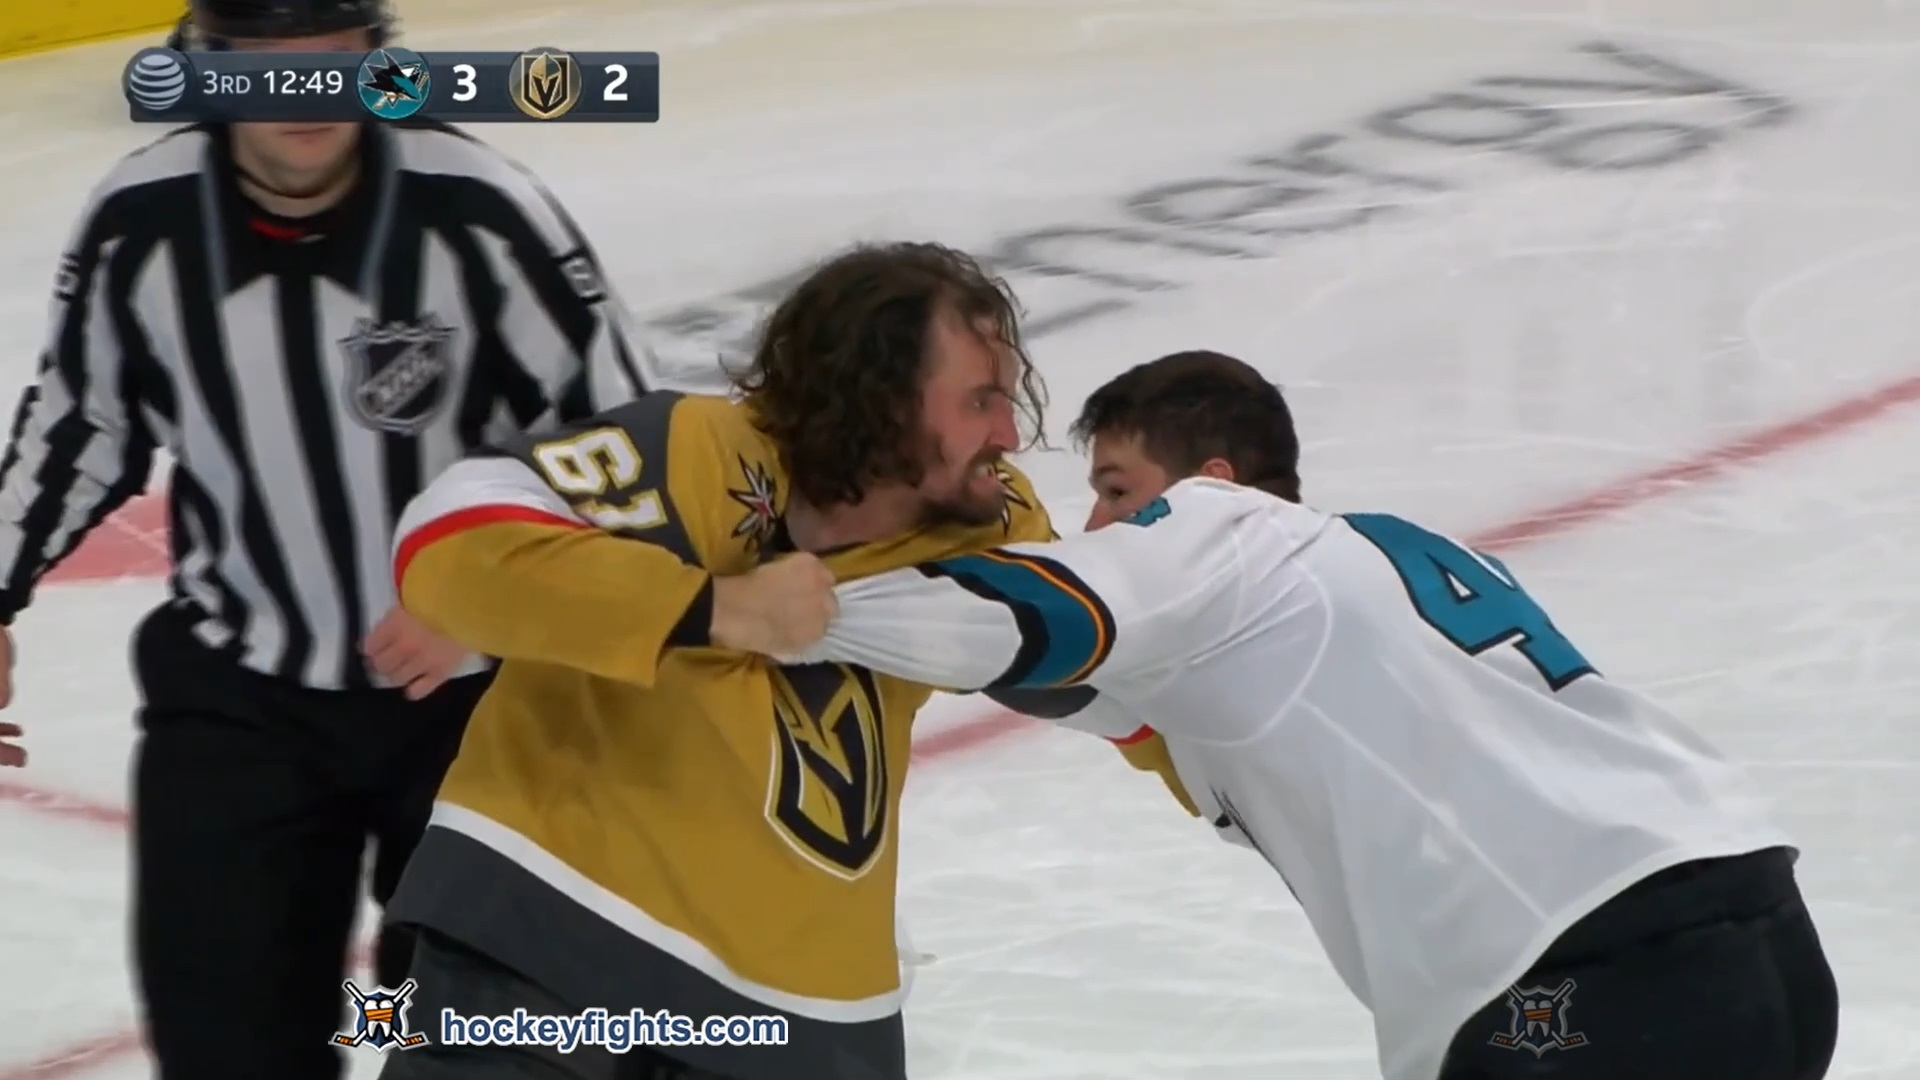 Mark Stone vs. Tomas Hertl